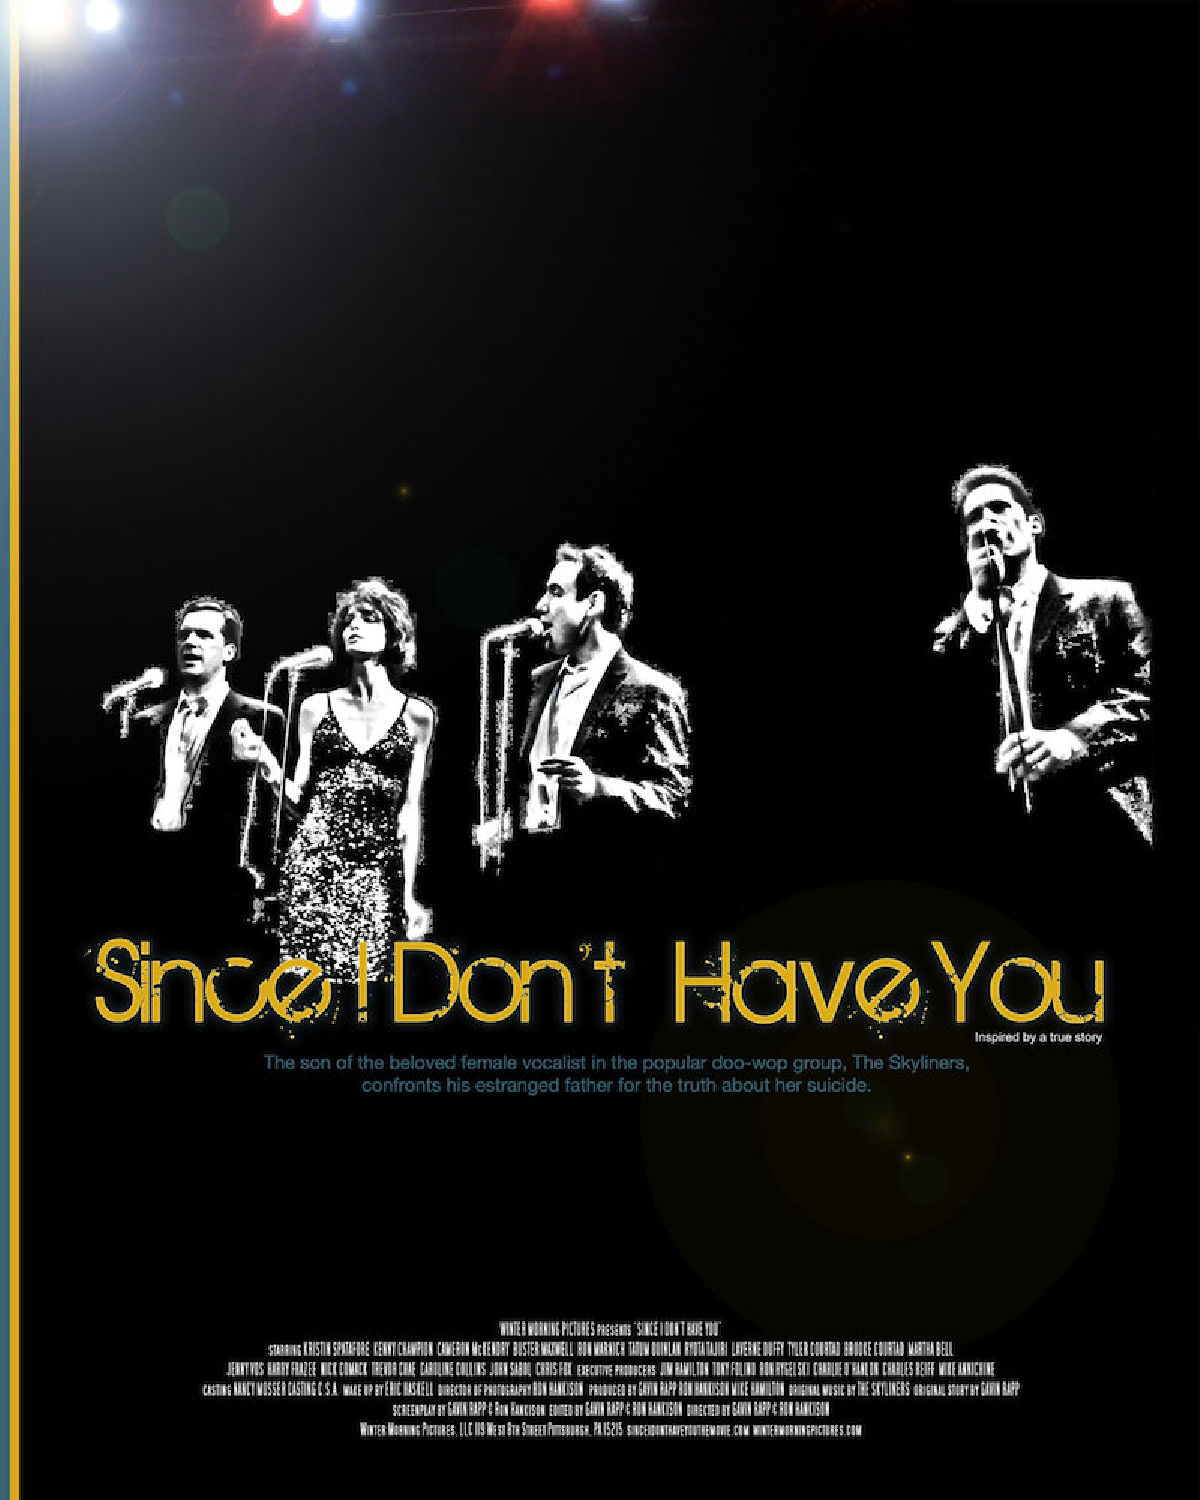 'Since I Don't Have You' movie poster